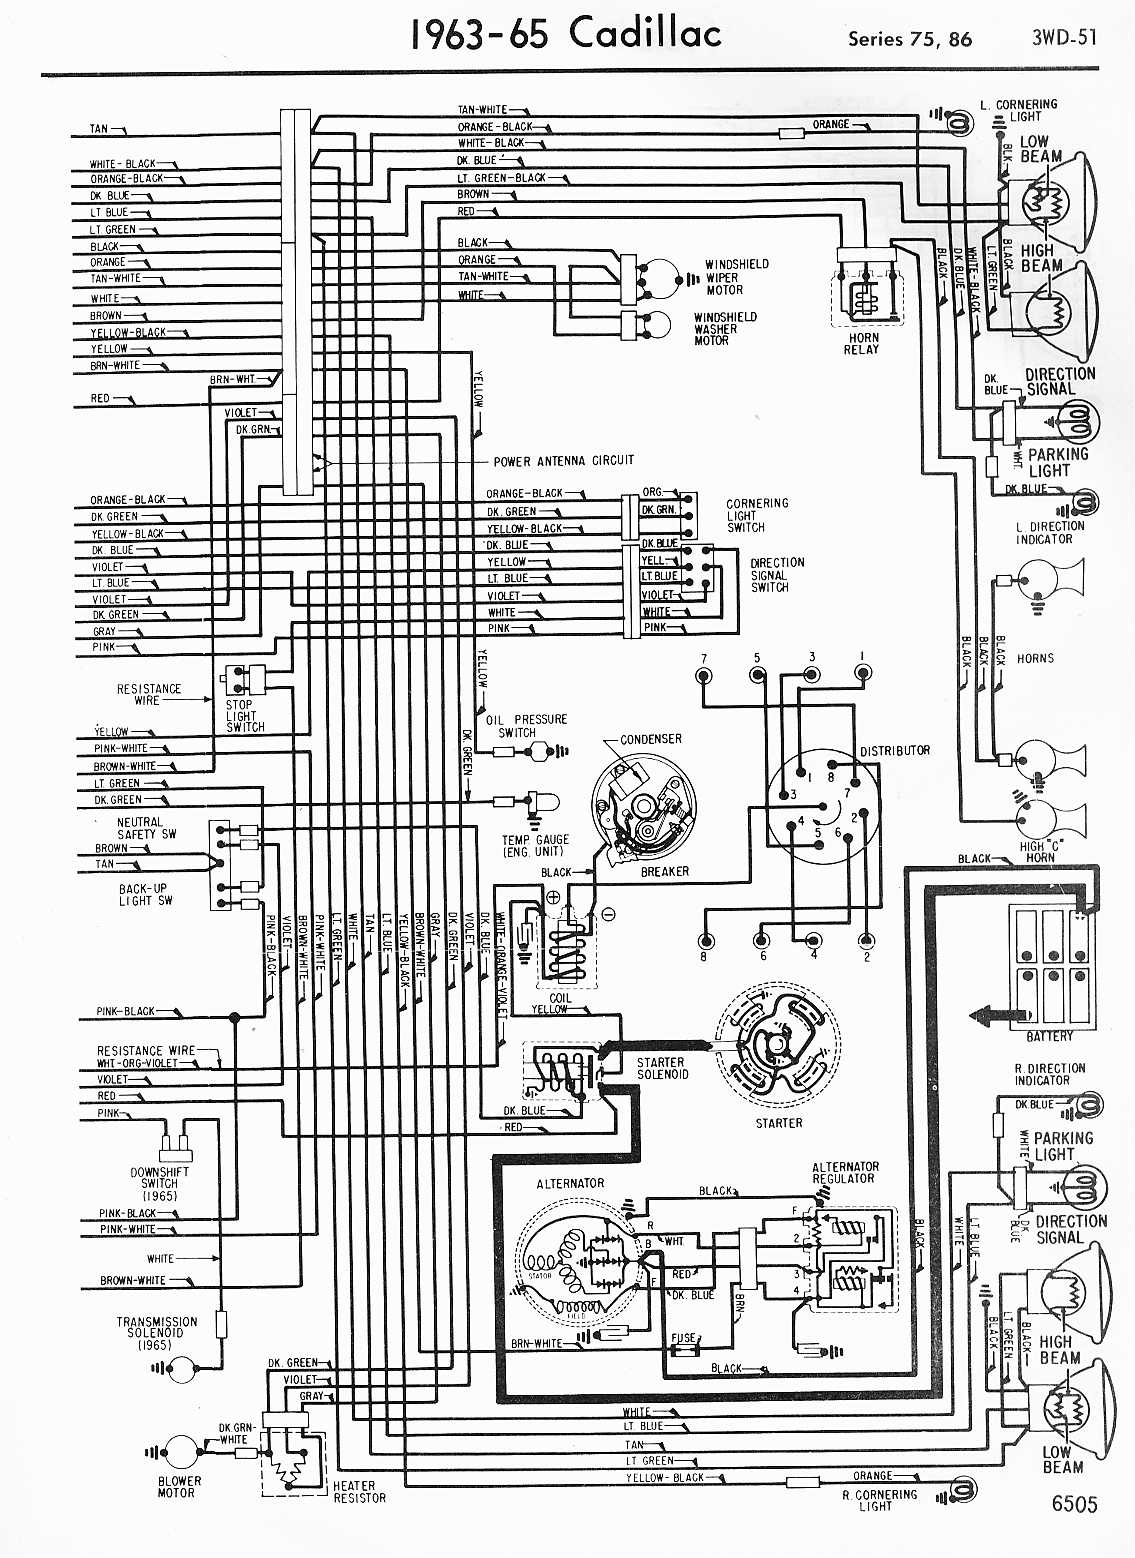 MWireCadi65_3WD 051 cadillac wiring harness ram truck wiring harness \u2022 wiring diagrams  at cos-gaming.co